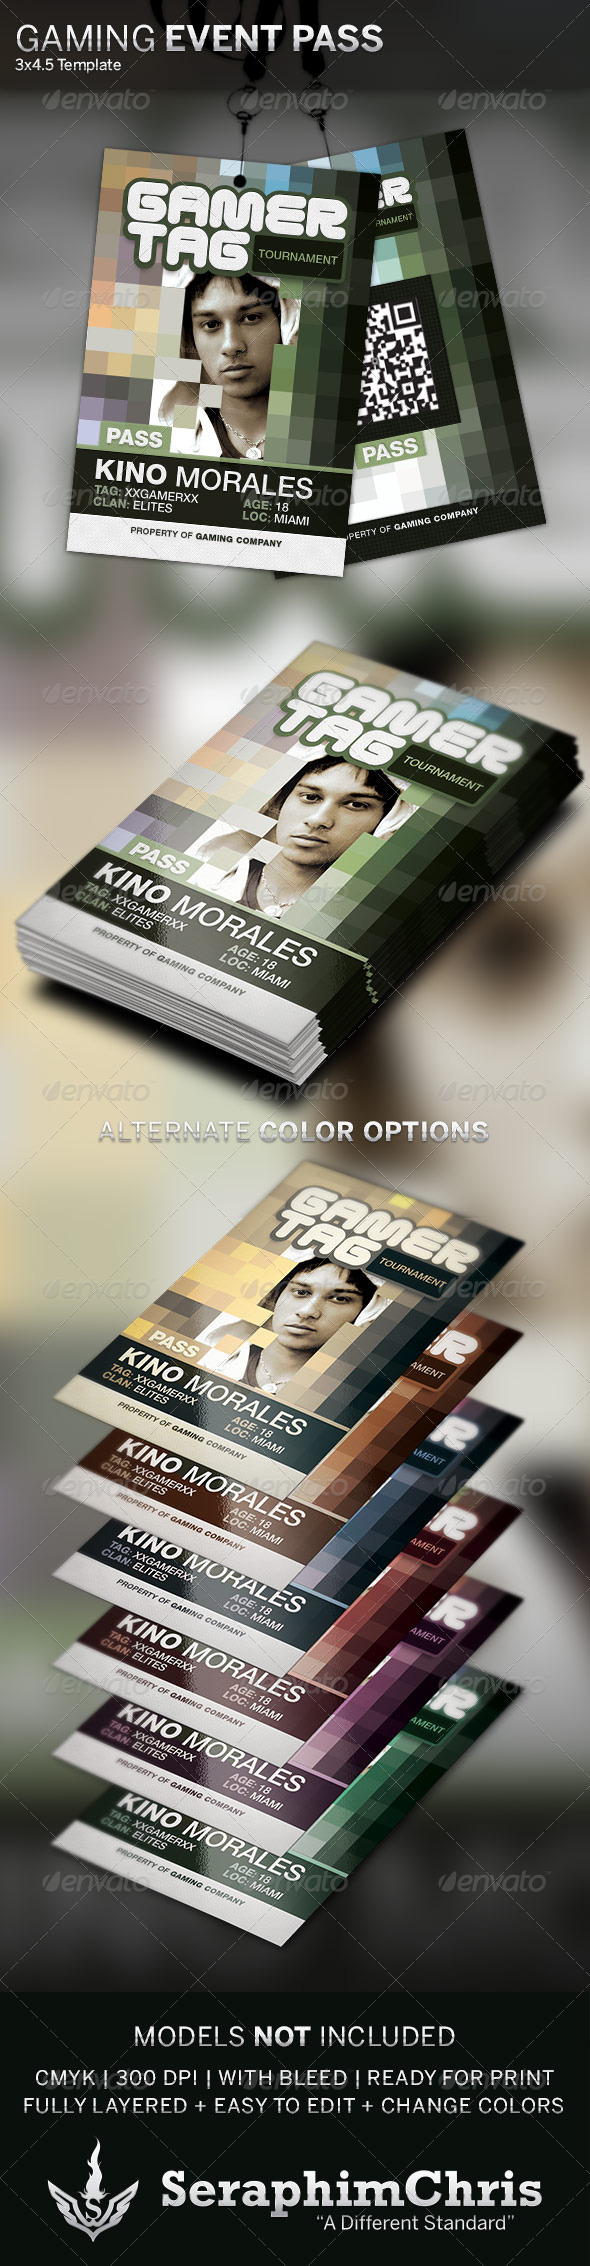 GraphicRiver Gamer Tag Event Pass Template 4354994